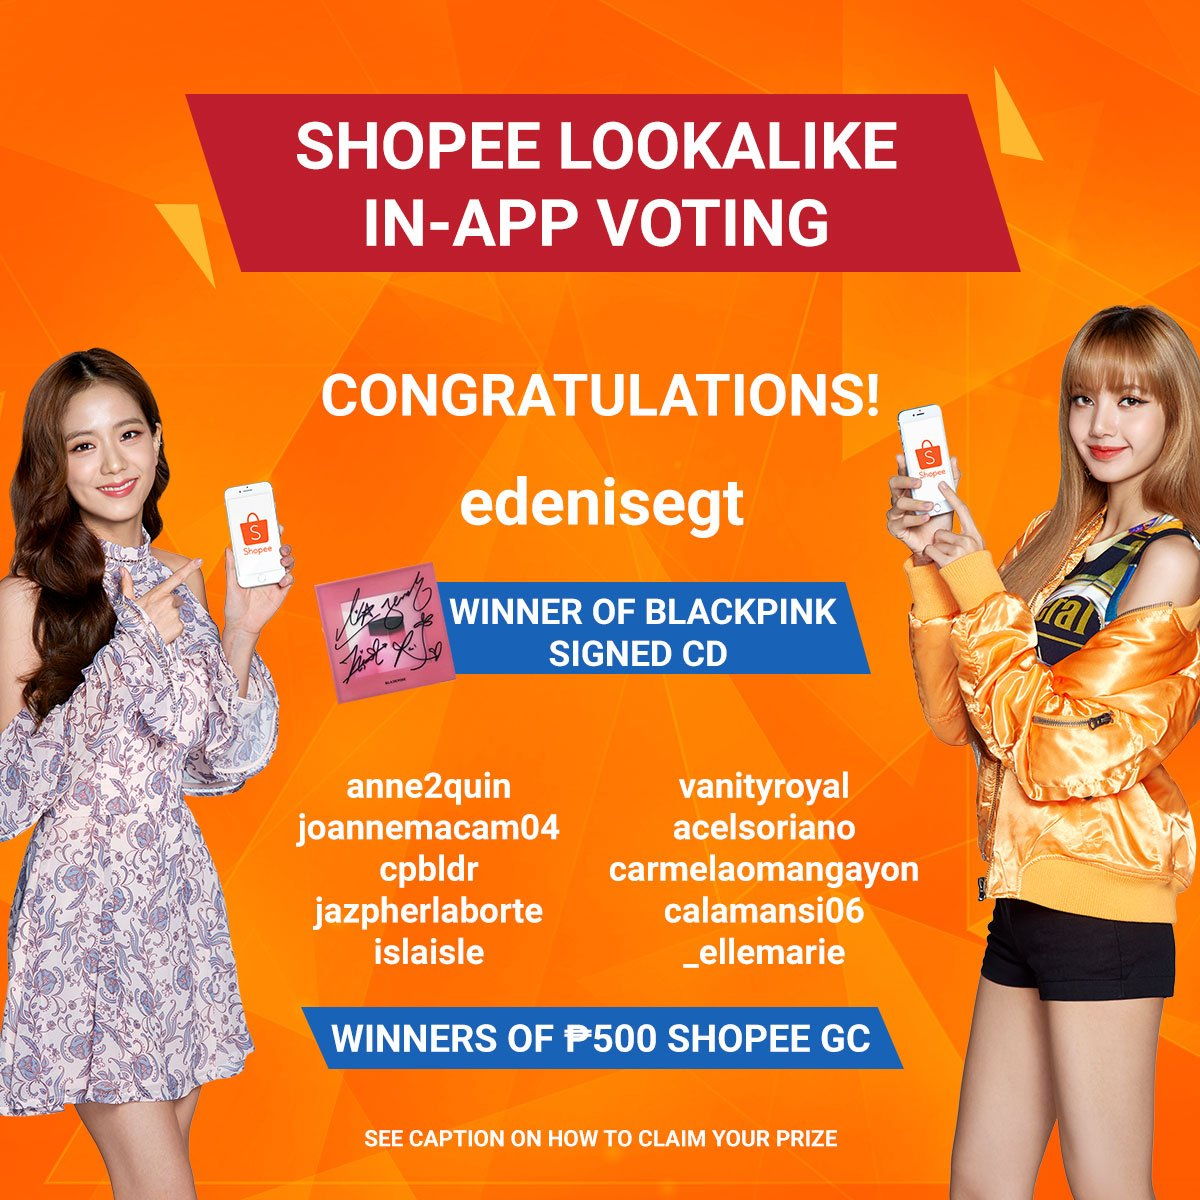 Congratulations to our lucky lookalike voters! 🙂 #ShopeeLookalikePH . . ***Please send us a message on or before April 10,2019 to claim your prize. Check the full info at https://facebook.com/ShopeePH/photos/a.1984176331887925/2069477556691135/ … #ShopeeGiveawayWinners #ShopeeApp #ShopeePH #ShopeePhilippines